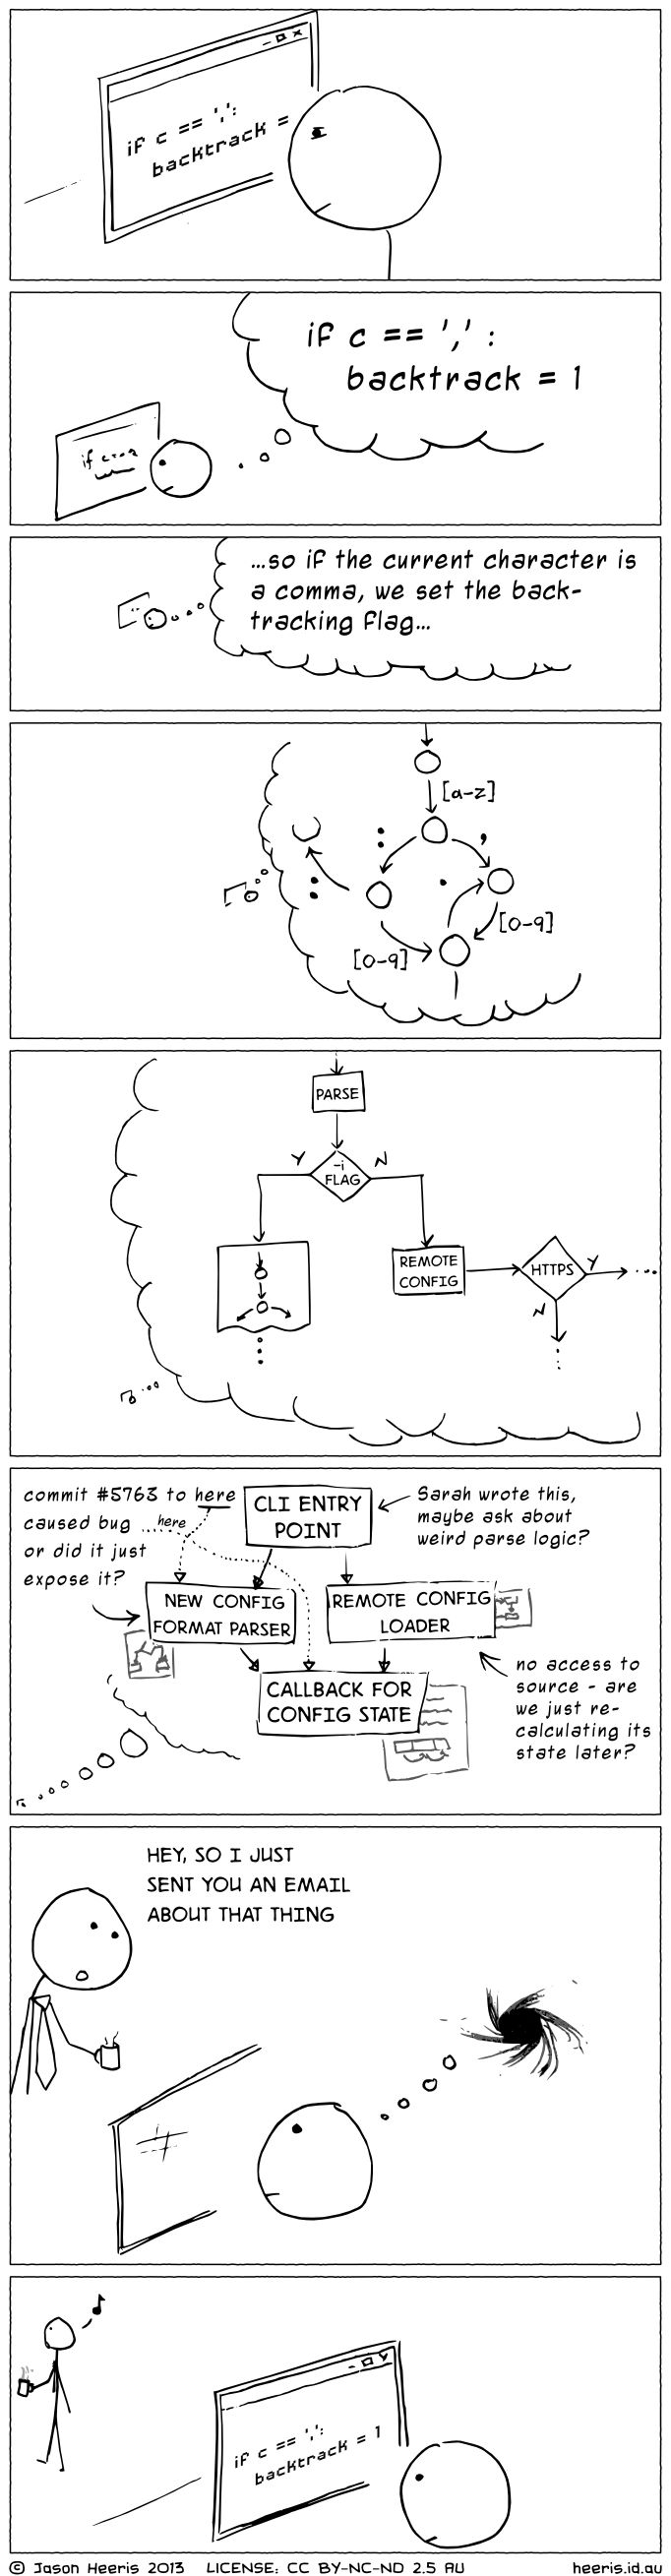 This is why you shouldn't interrupt a programmer